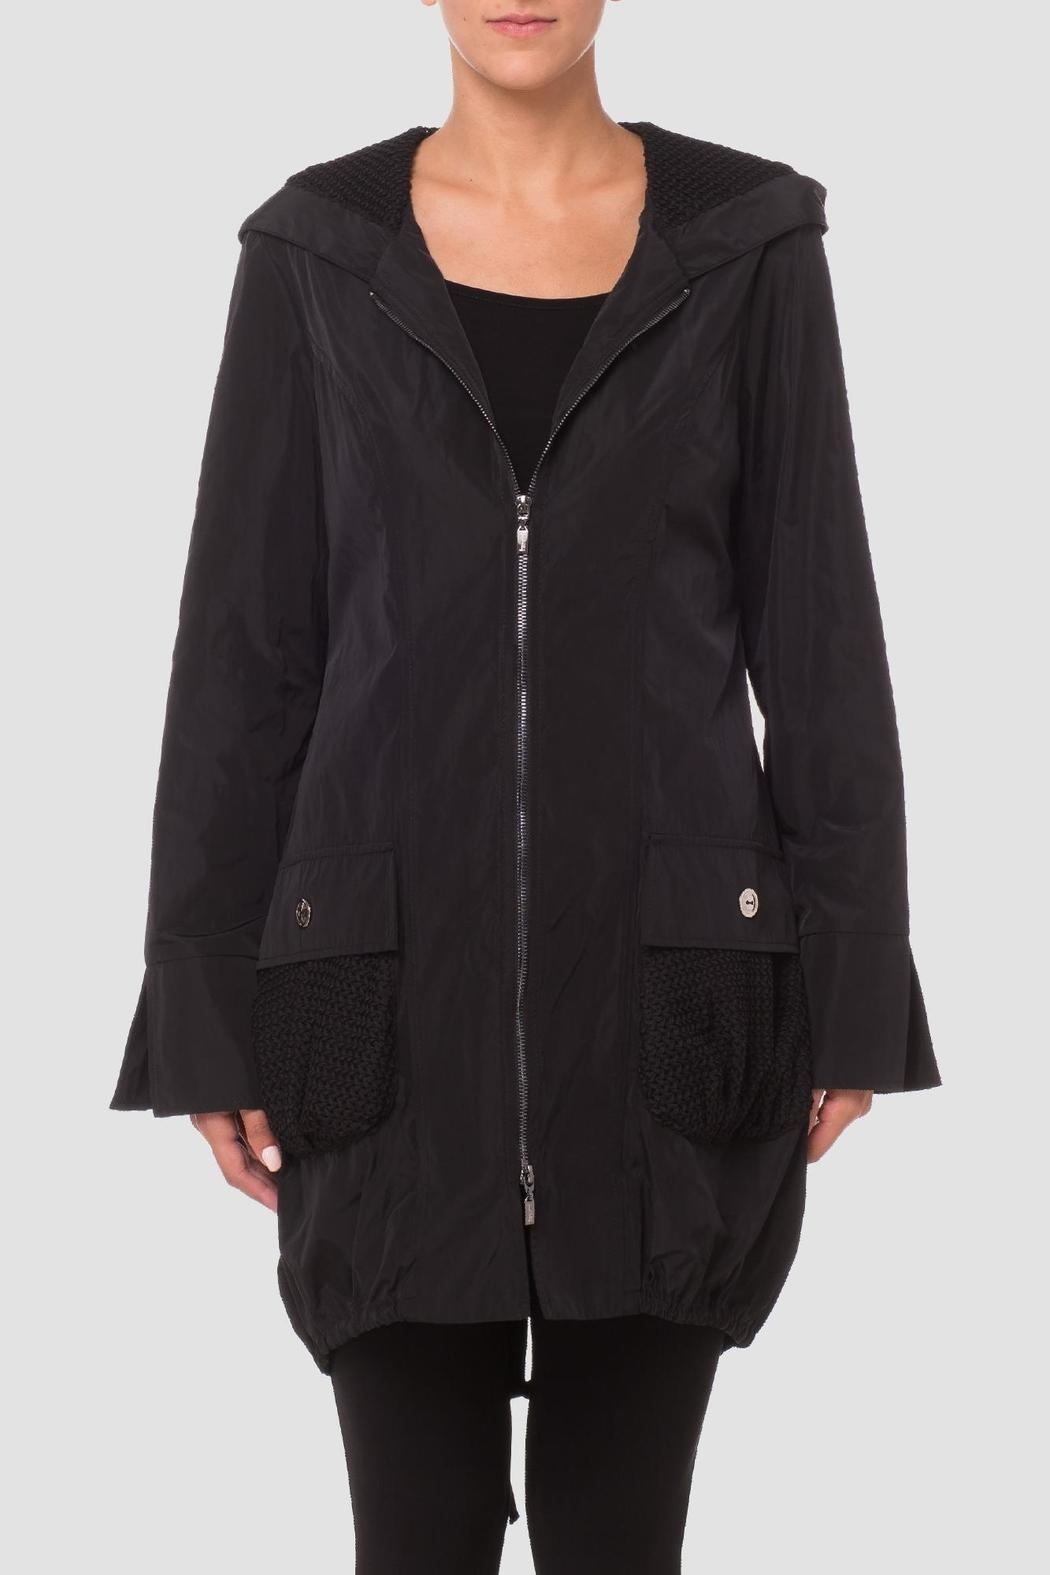 Joseph Ribkoff Black Bubble Coat - Main Image